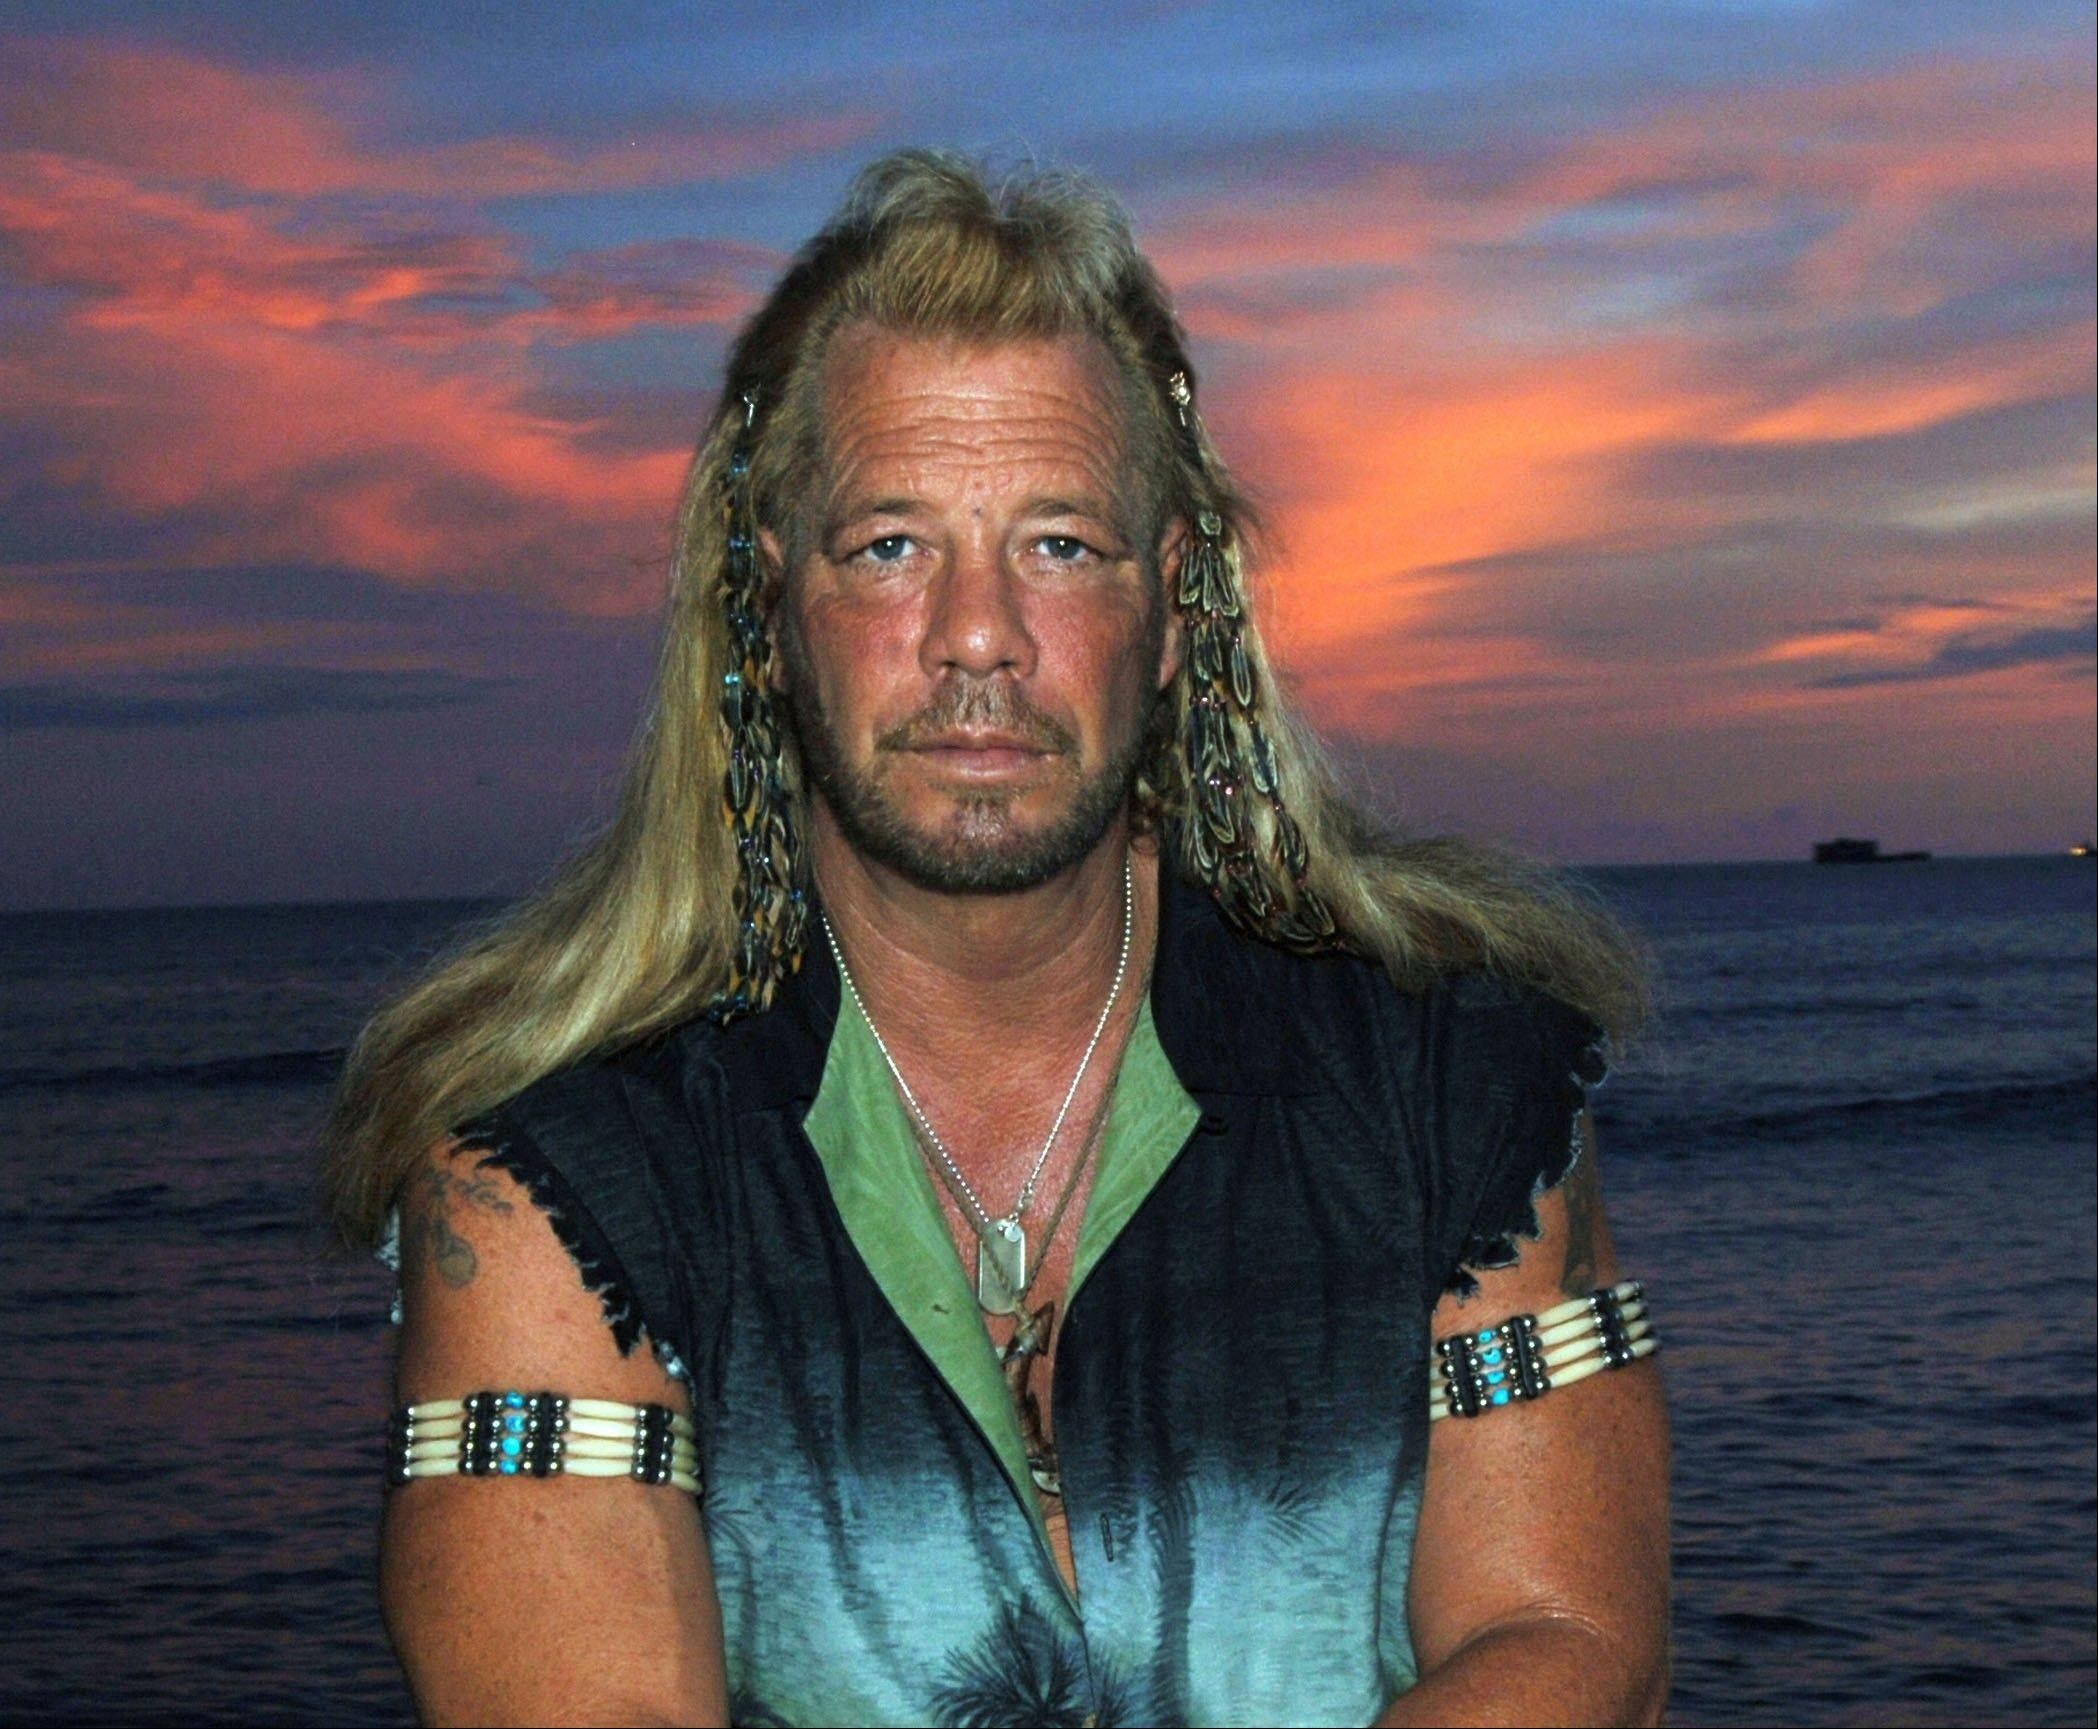 Duane �Dog� Chapman, star of �Dog the Bounty Hunter,� has his bags packed for London, but a murder conviction from the late 1970s is keeping him out of the United Kingdom. He was to appear on another reality show, �Celebrity Big Brother,� but he has been denied a visa.